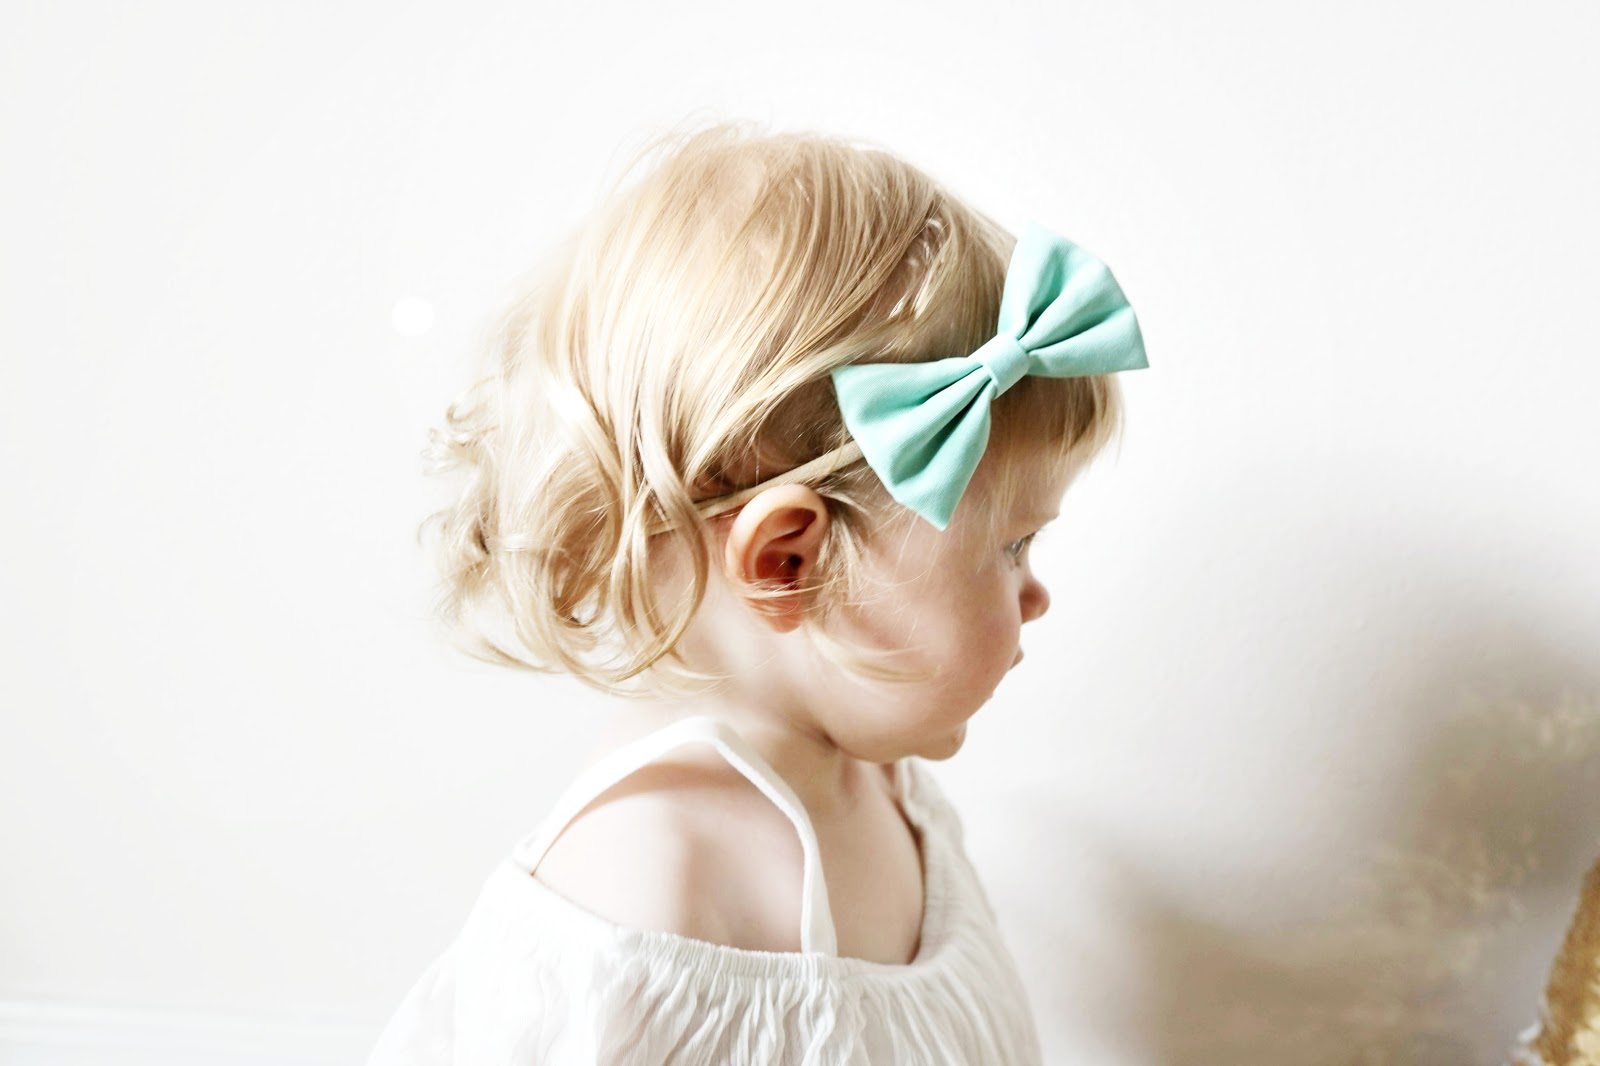 Sweet Cheeks Shop June 2018 bow review mint turquoise velvet baby girl toddler fashion